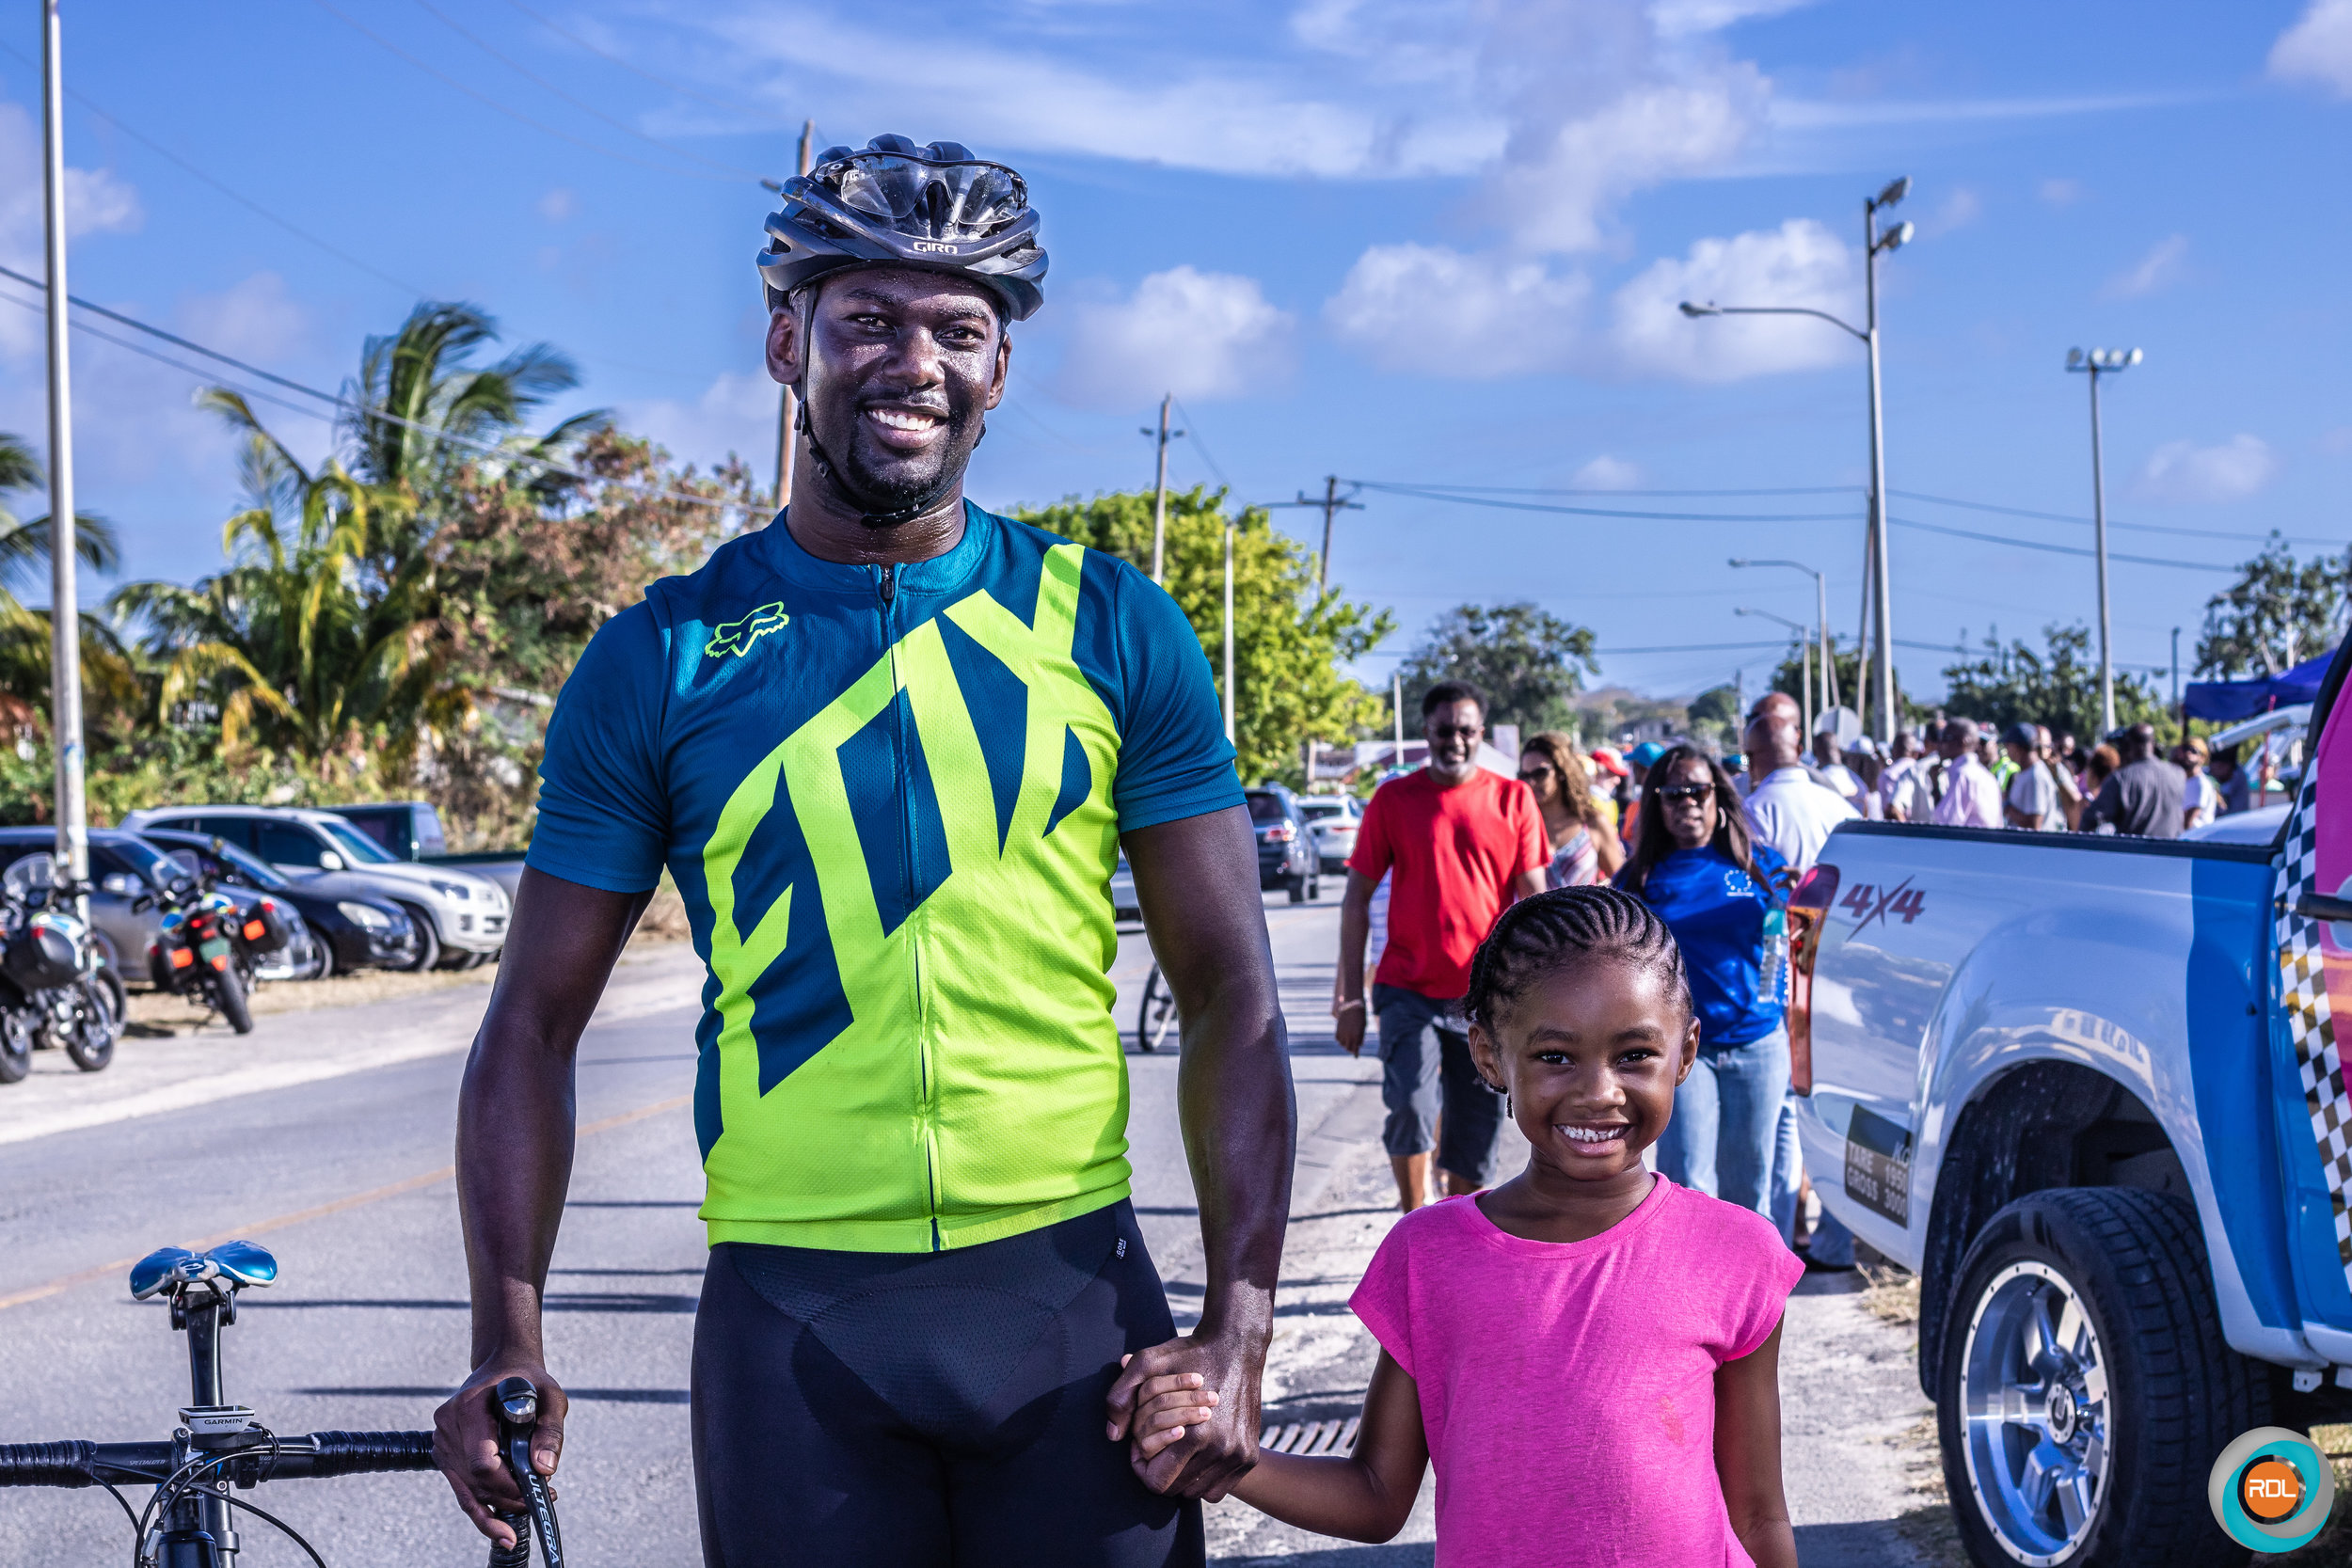 Category 3 cyclist Ron Graves finished fifth and is pictured here with his daughter.